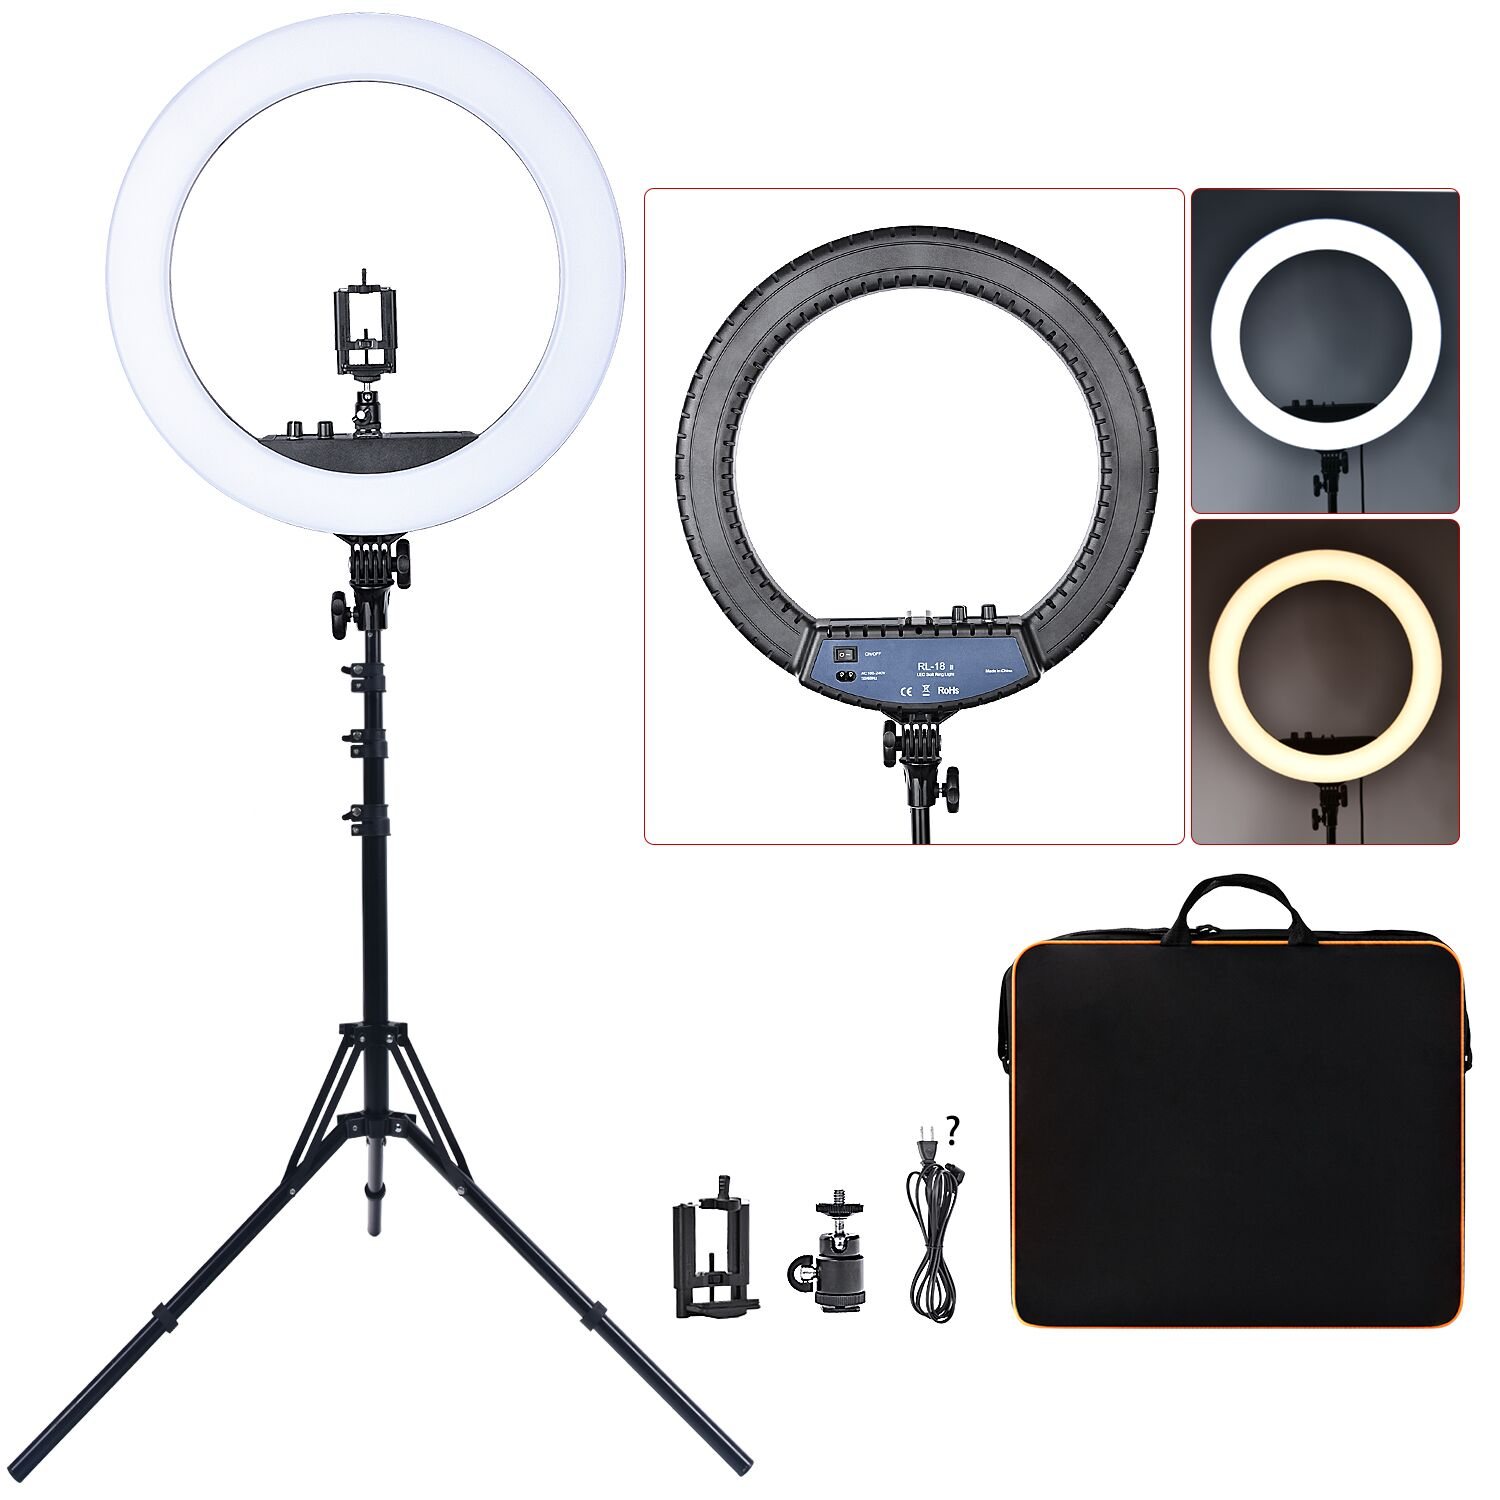 FOSOTO RL 18II Ring Lamp 18 Inch Photographic Lighting Ringlight 512Pcs Led Ring Light With Tripod Home v7 VC